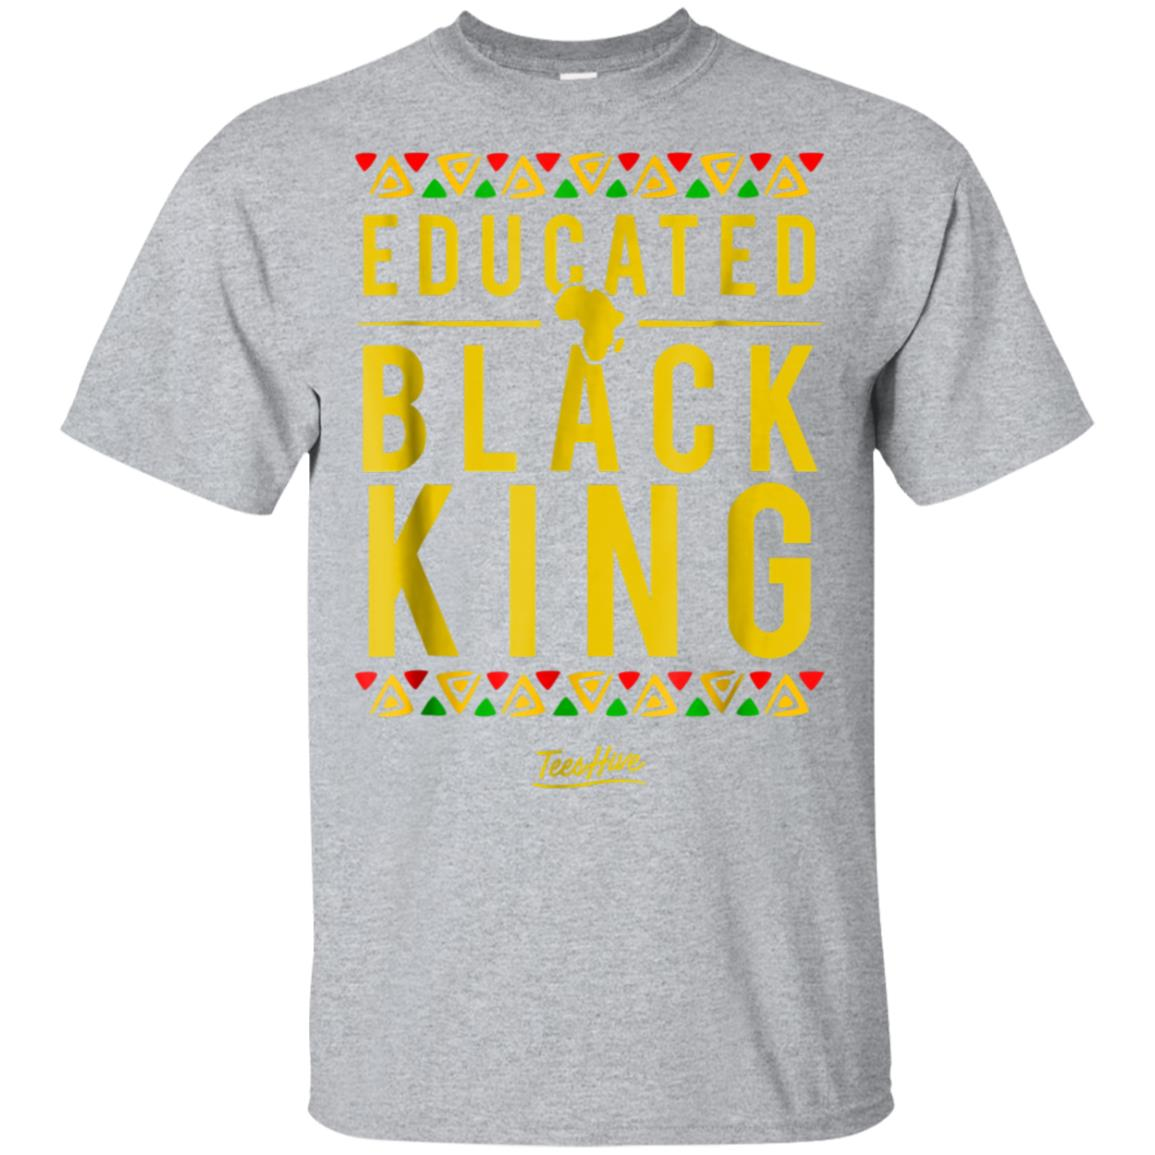 Educated Black King Pro Black Proud African American T Shirt 99promocode